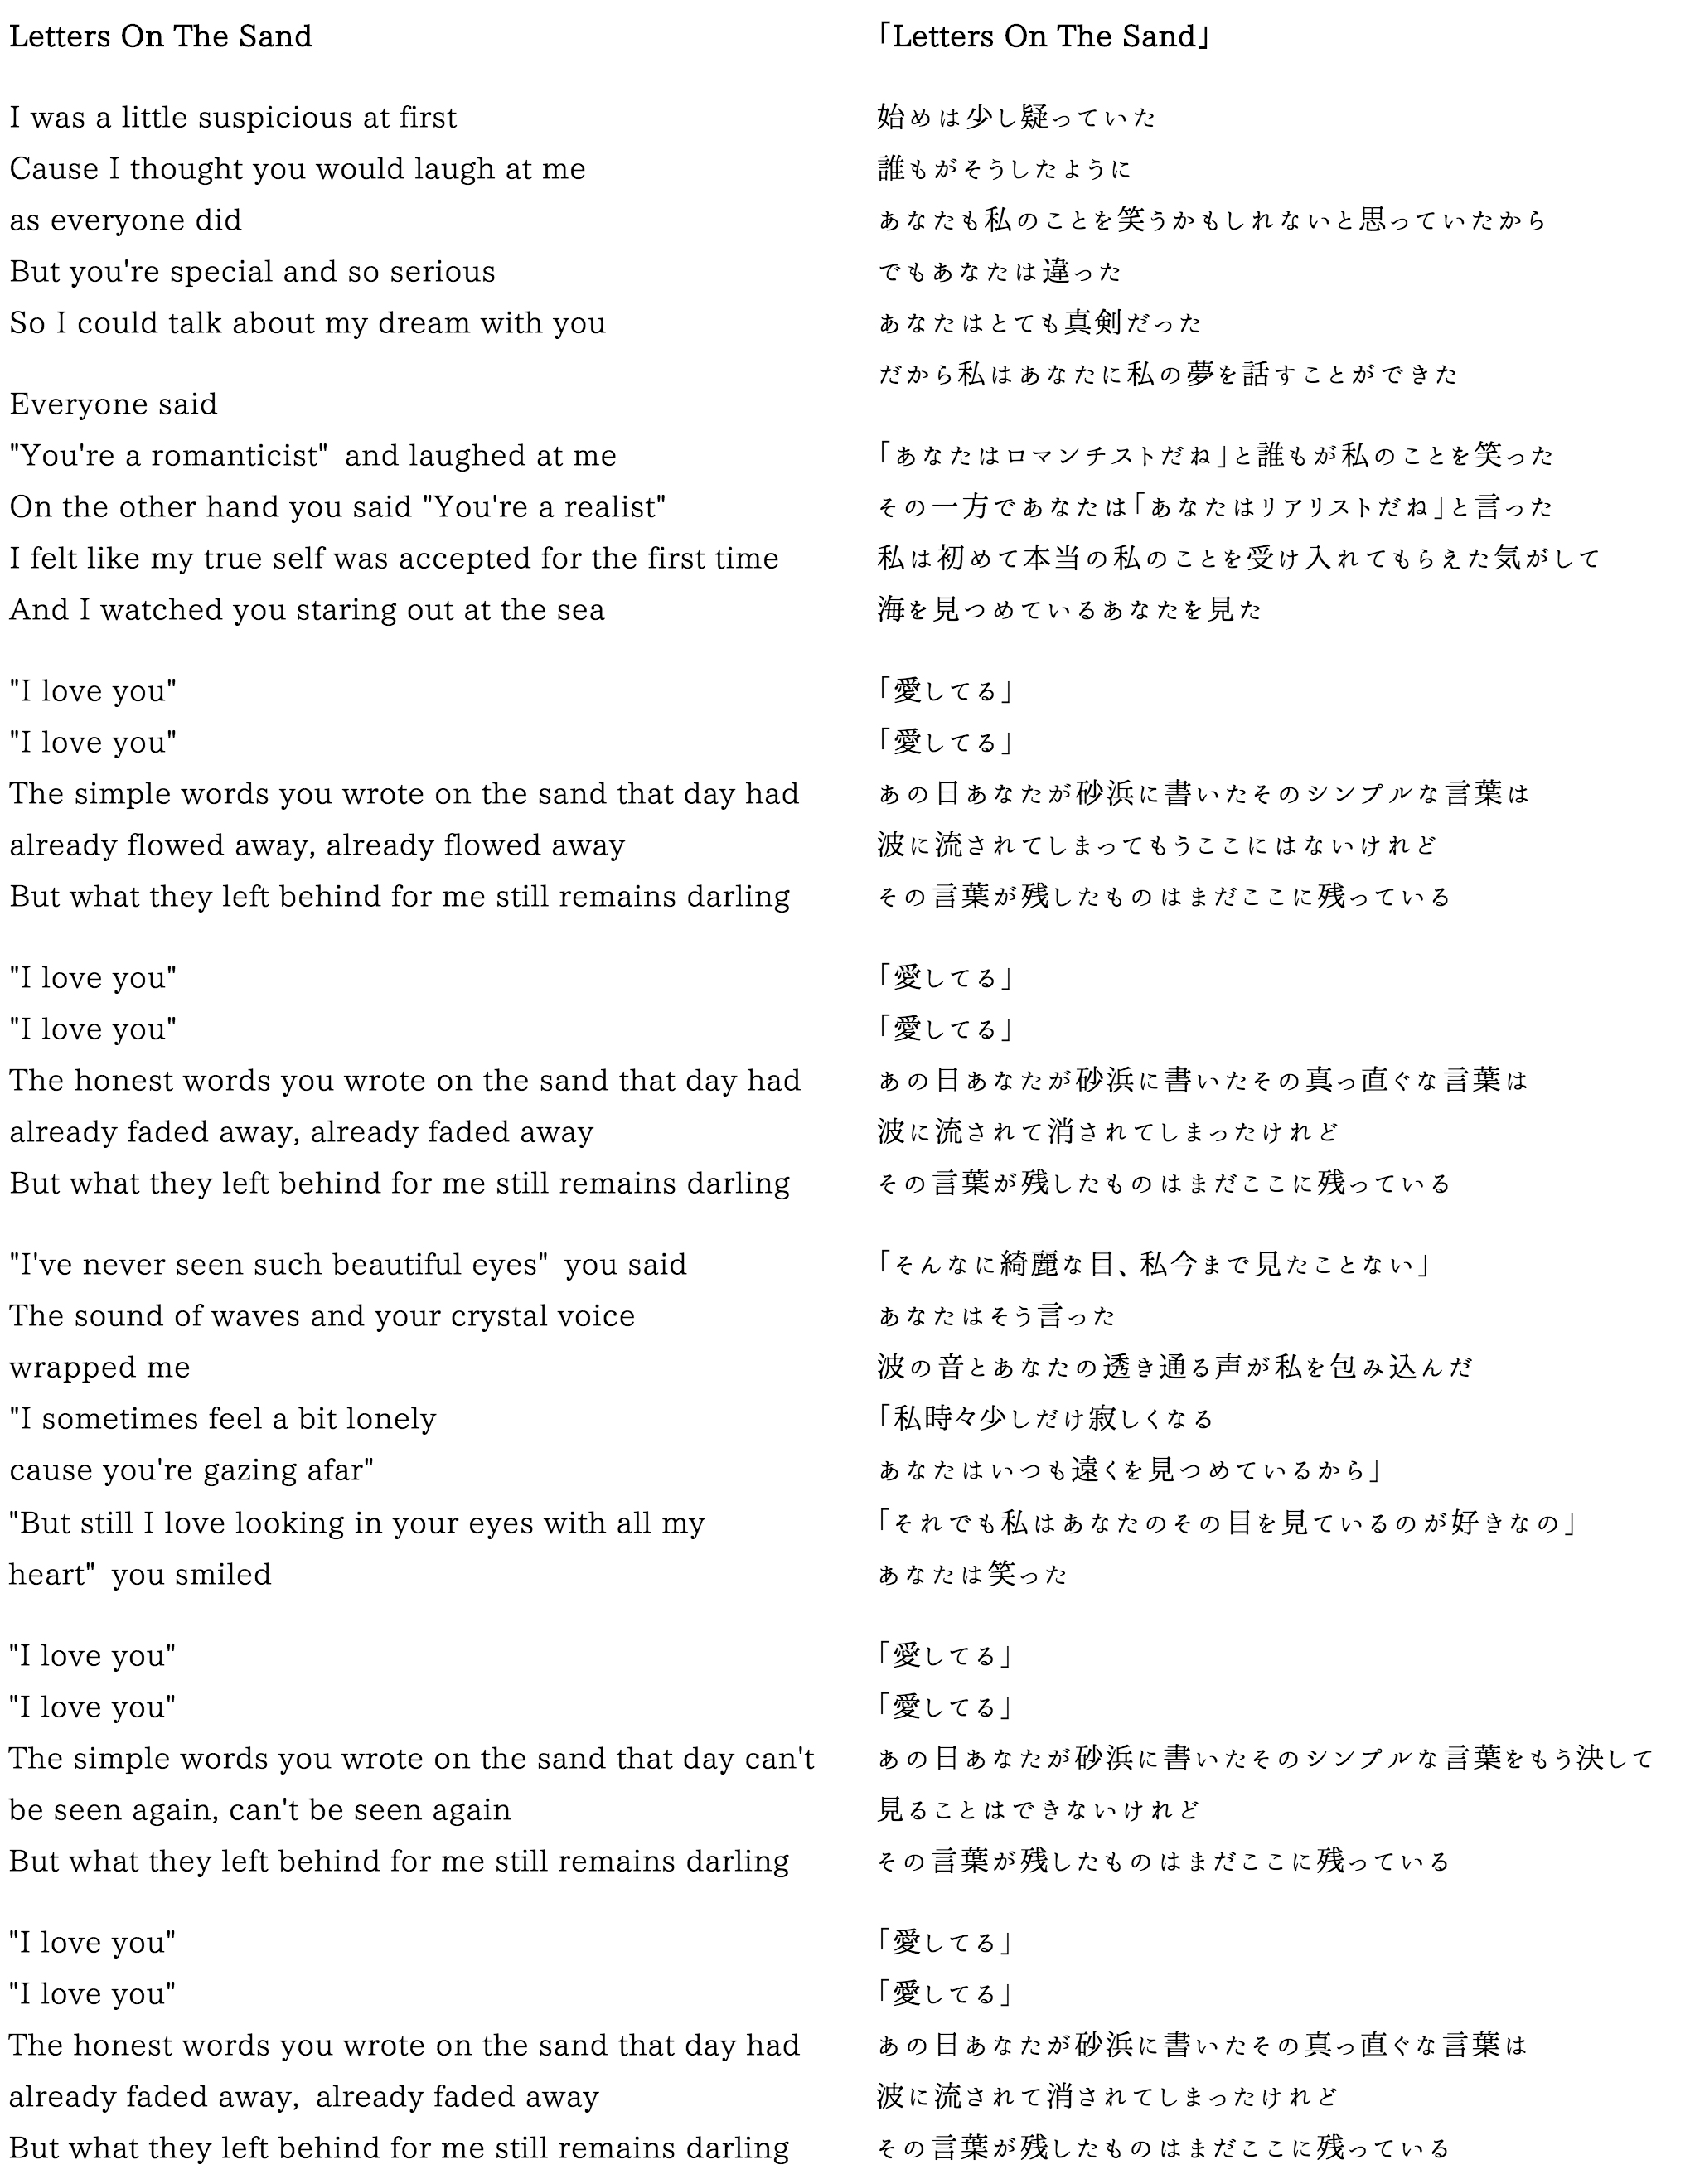 Letters-On-The-Sand-Lyric-for-Web.jpg